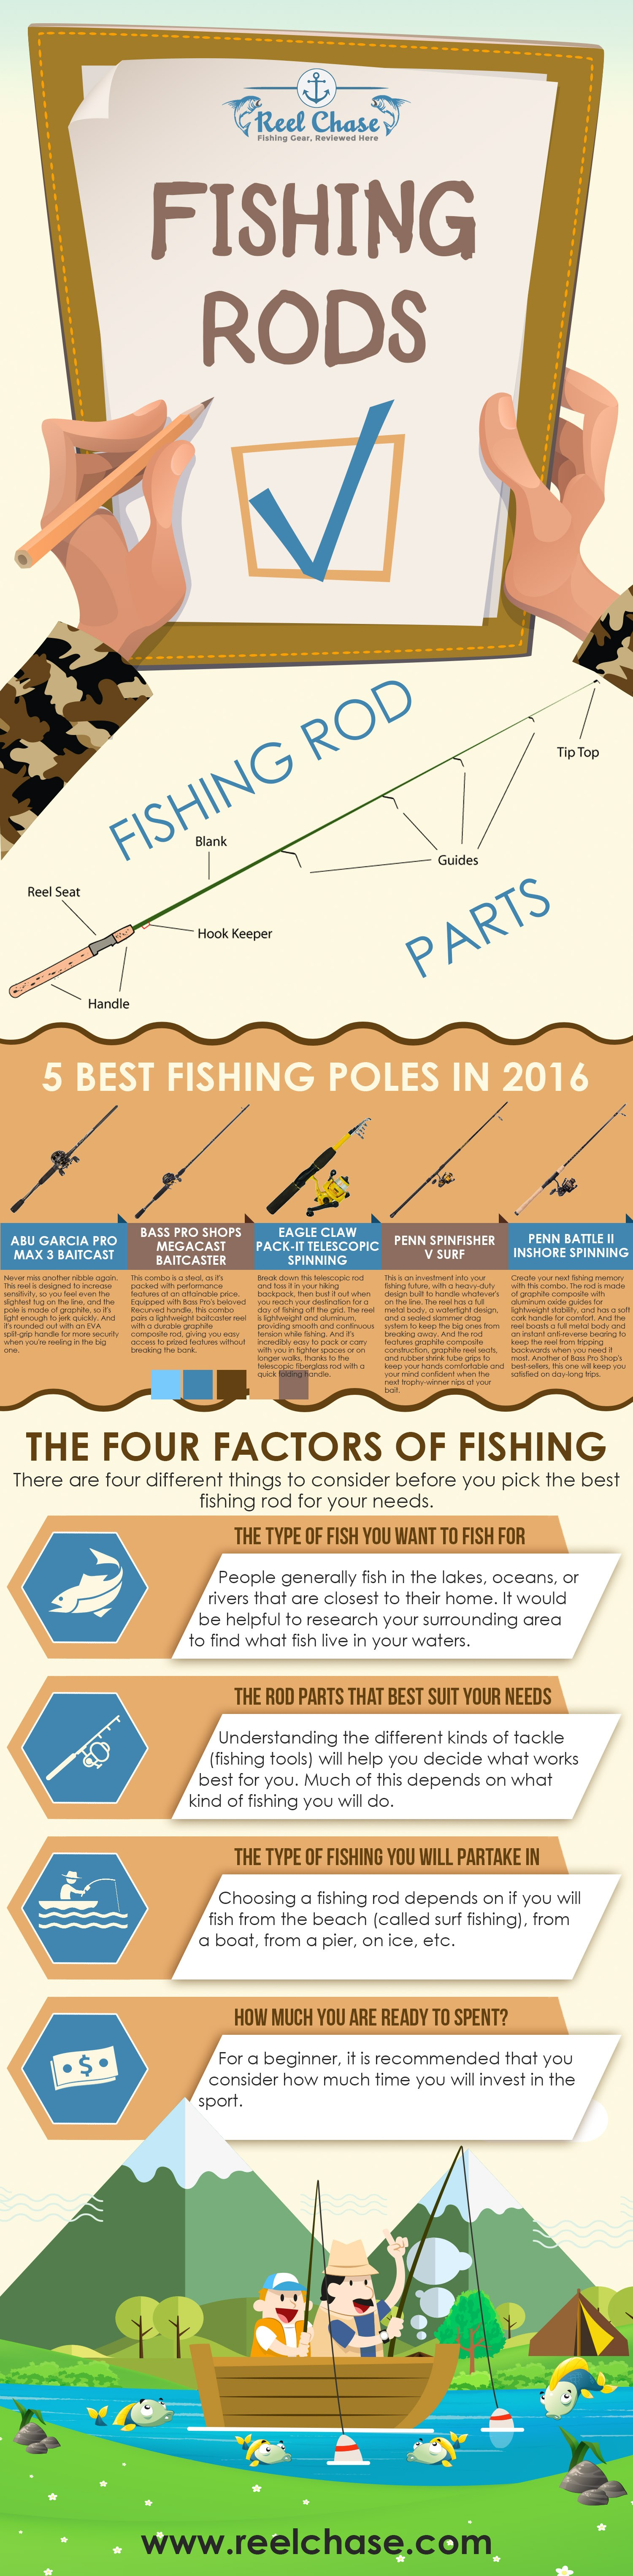 Fishing Rods Infographic